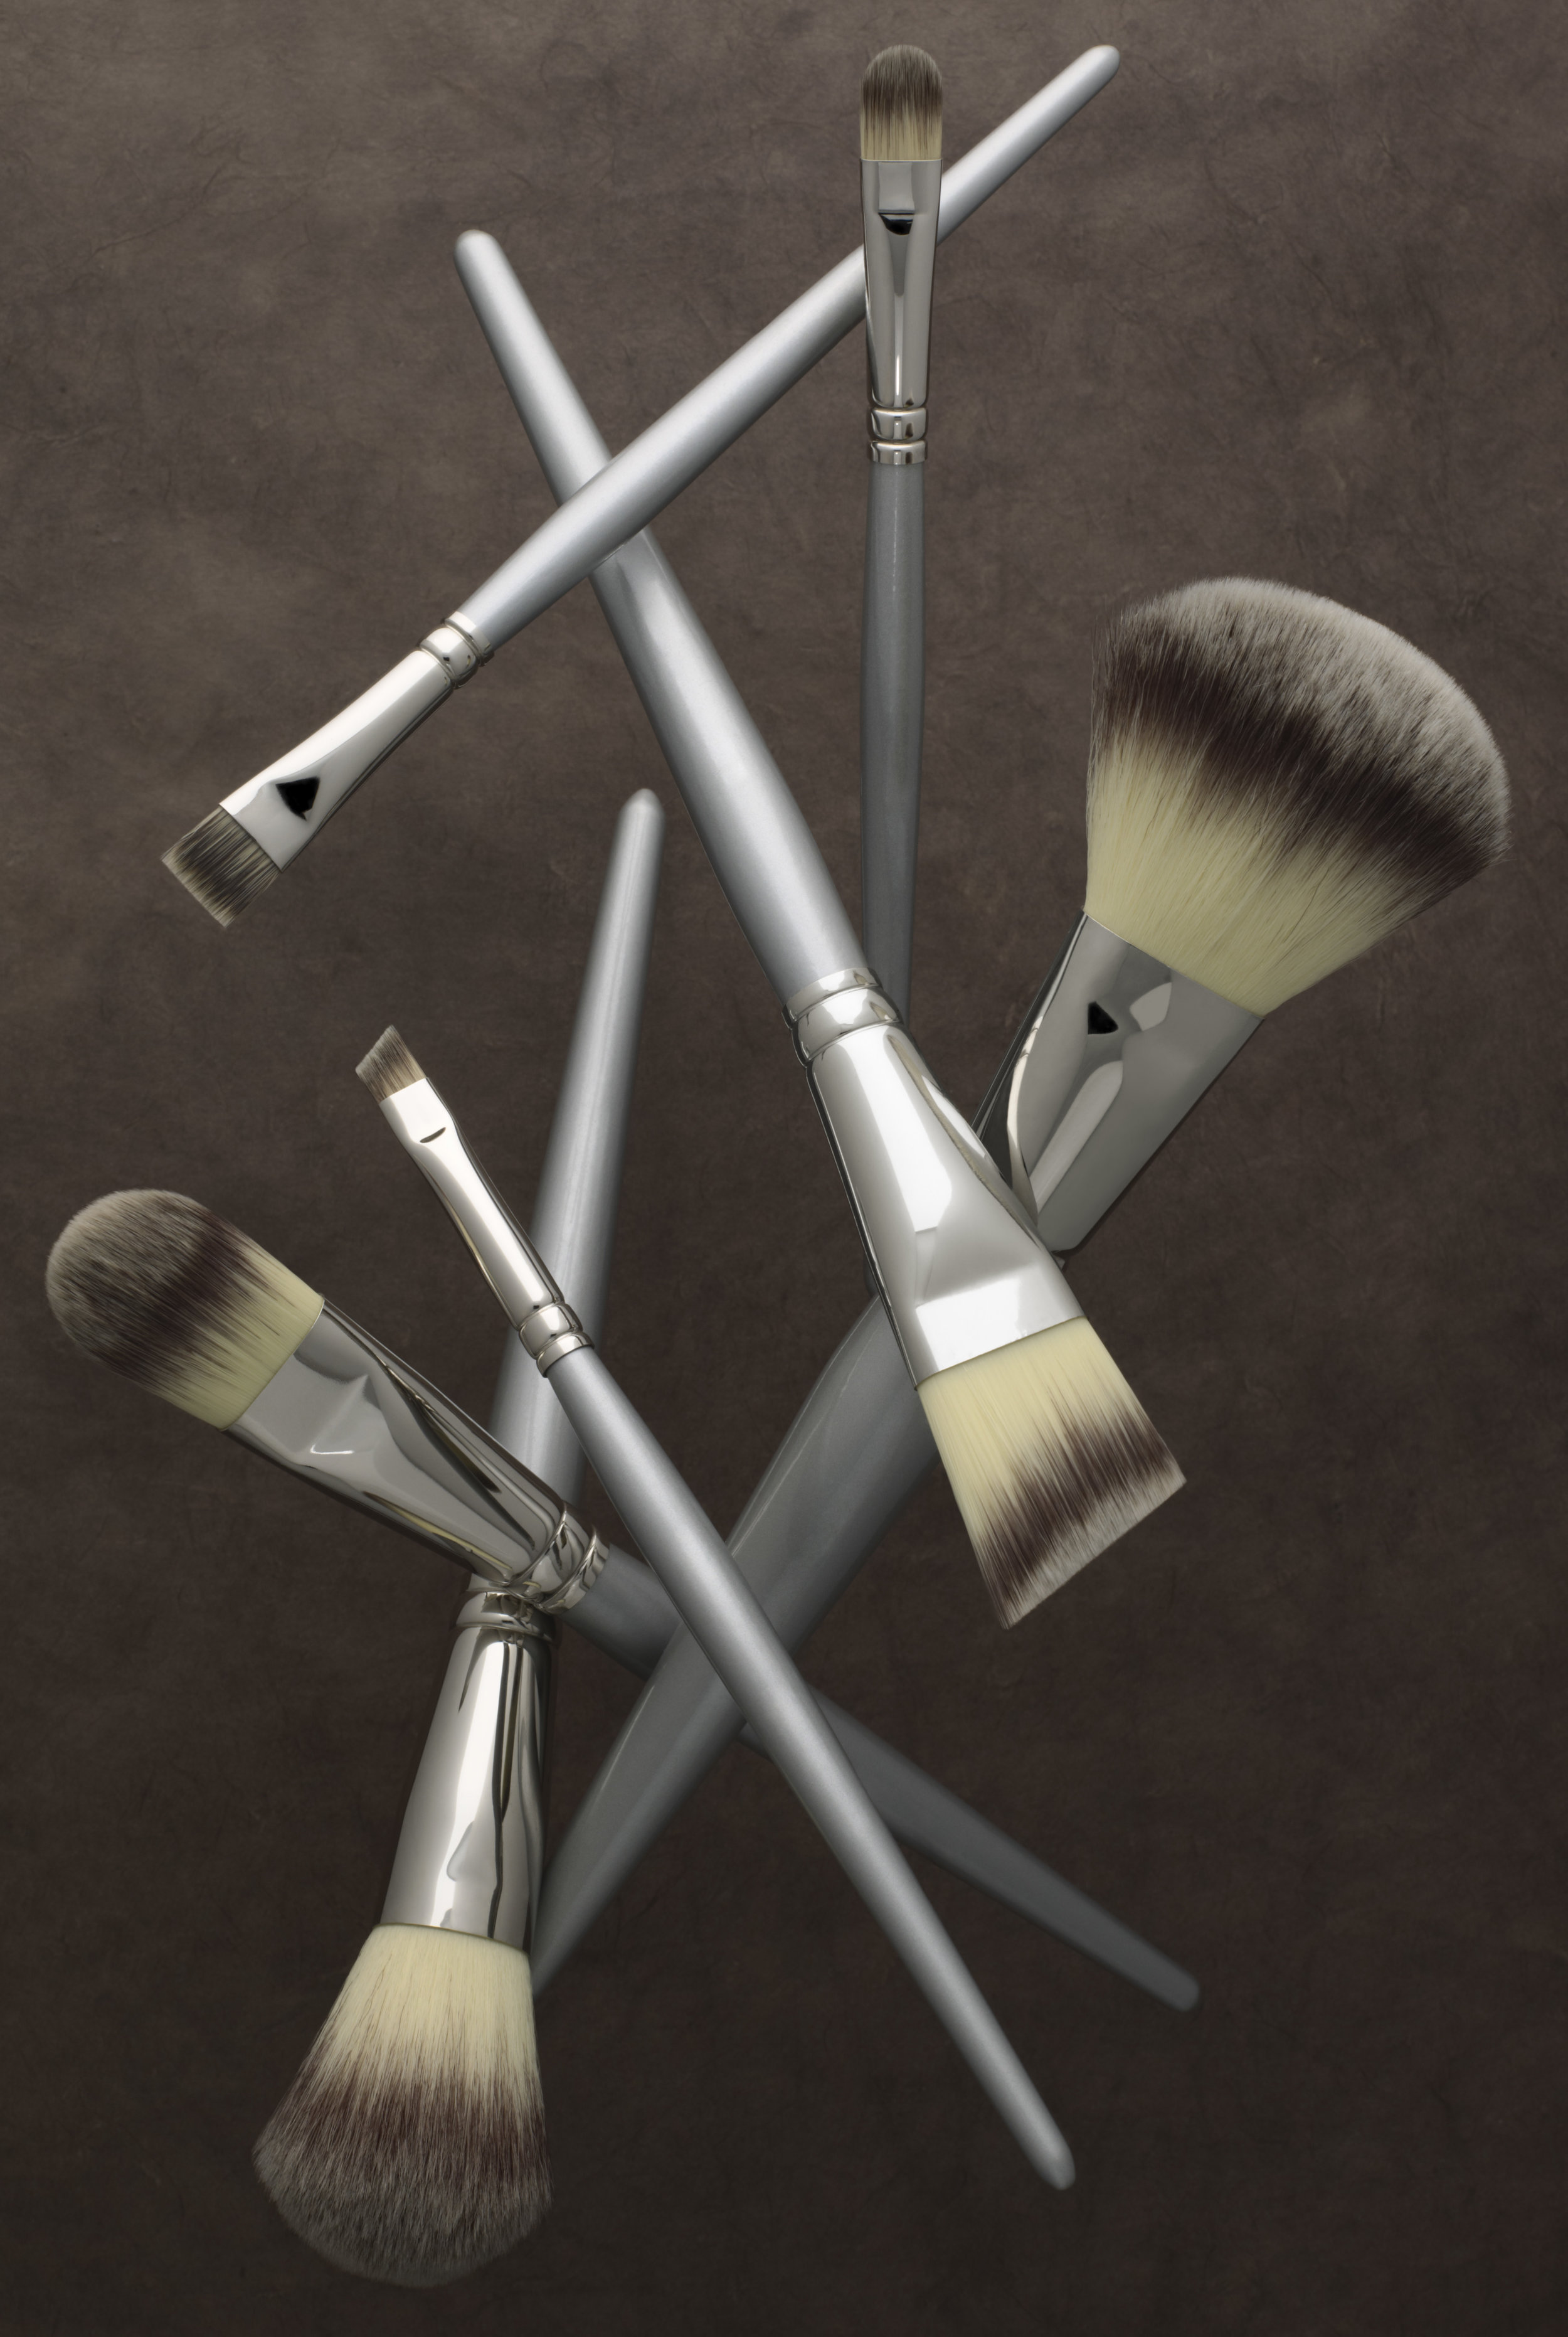 Brushes_15373_after.jpg